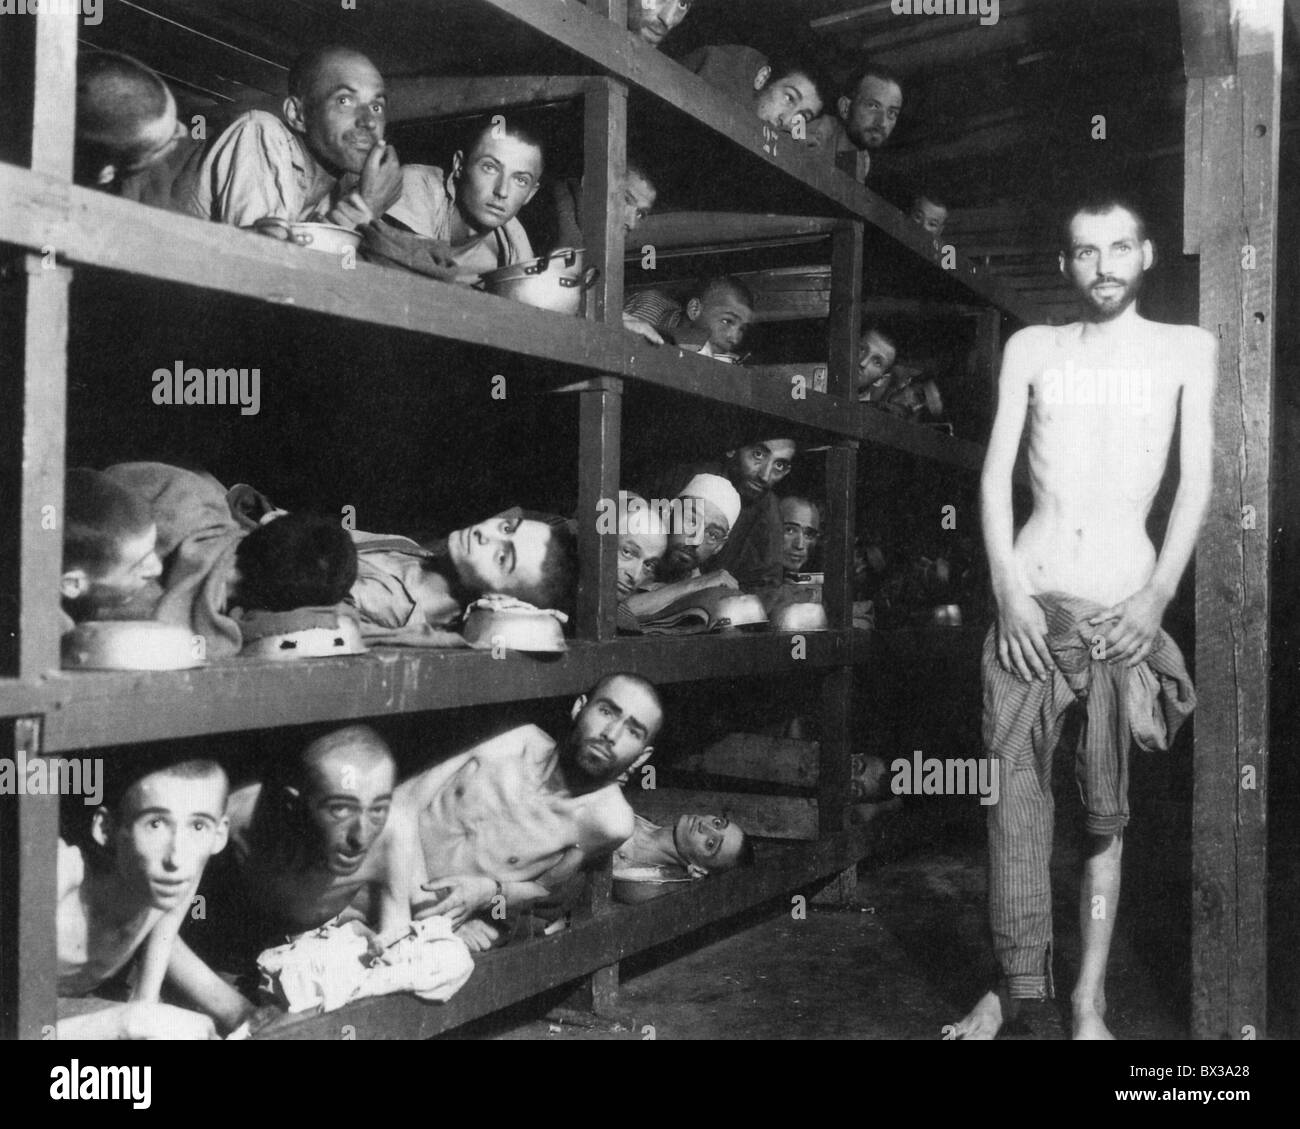 OHRDRUF CONCENTRATION CAMP near Gotha, Germany, photographed by US Forces after liberation on 4 April 1945 Stock Photo